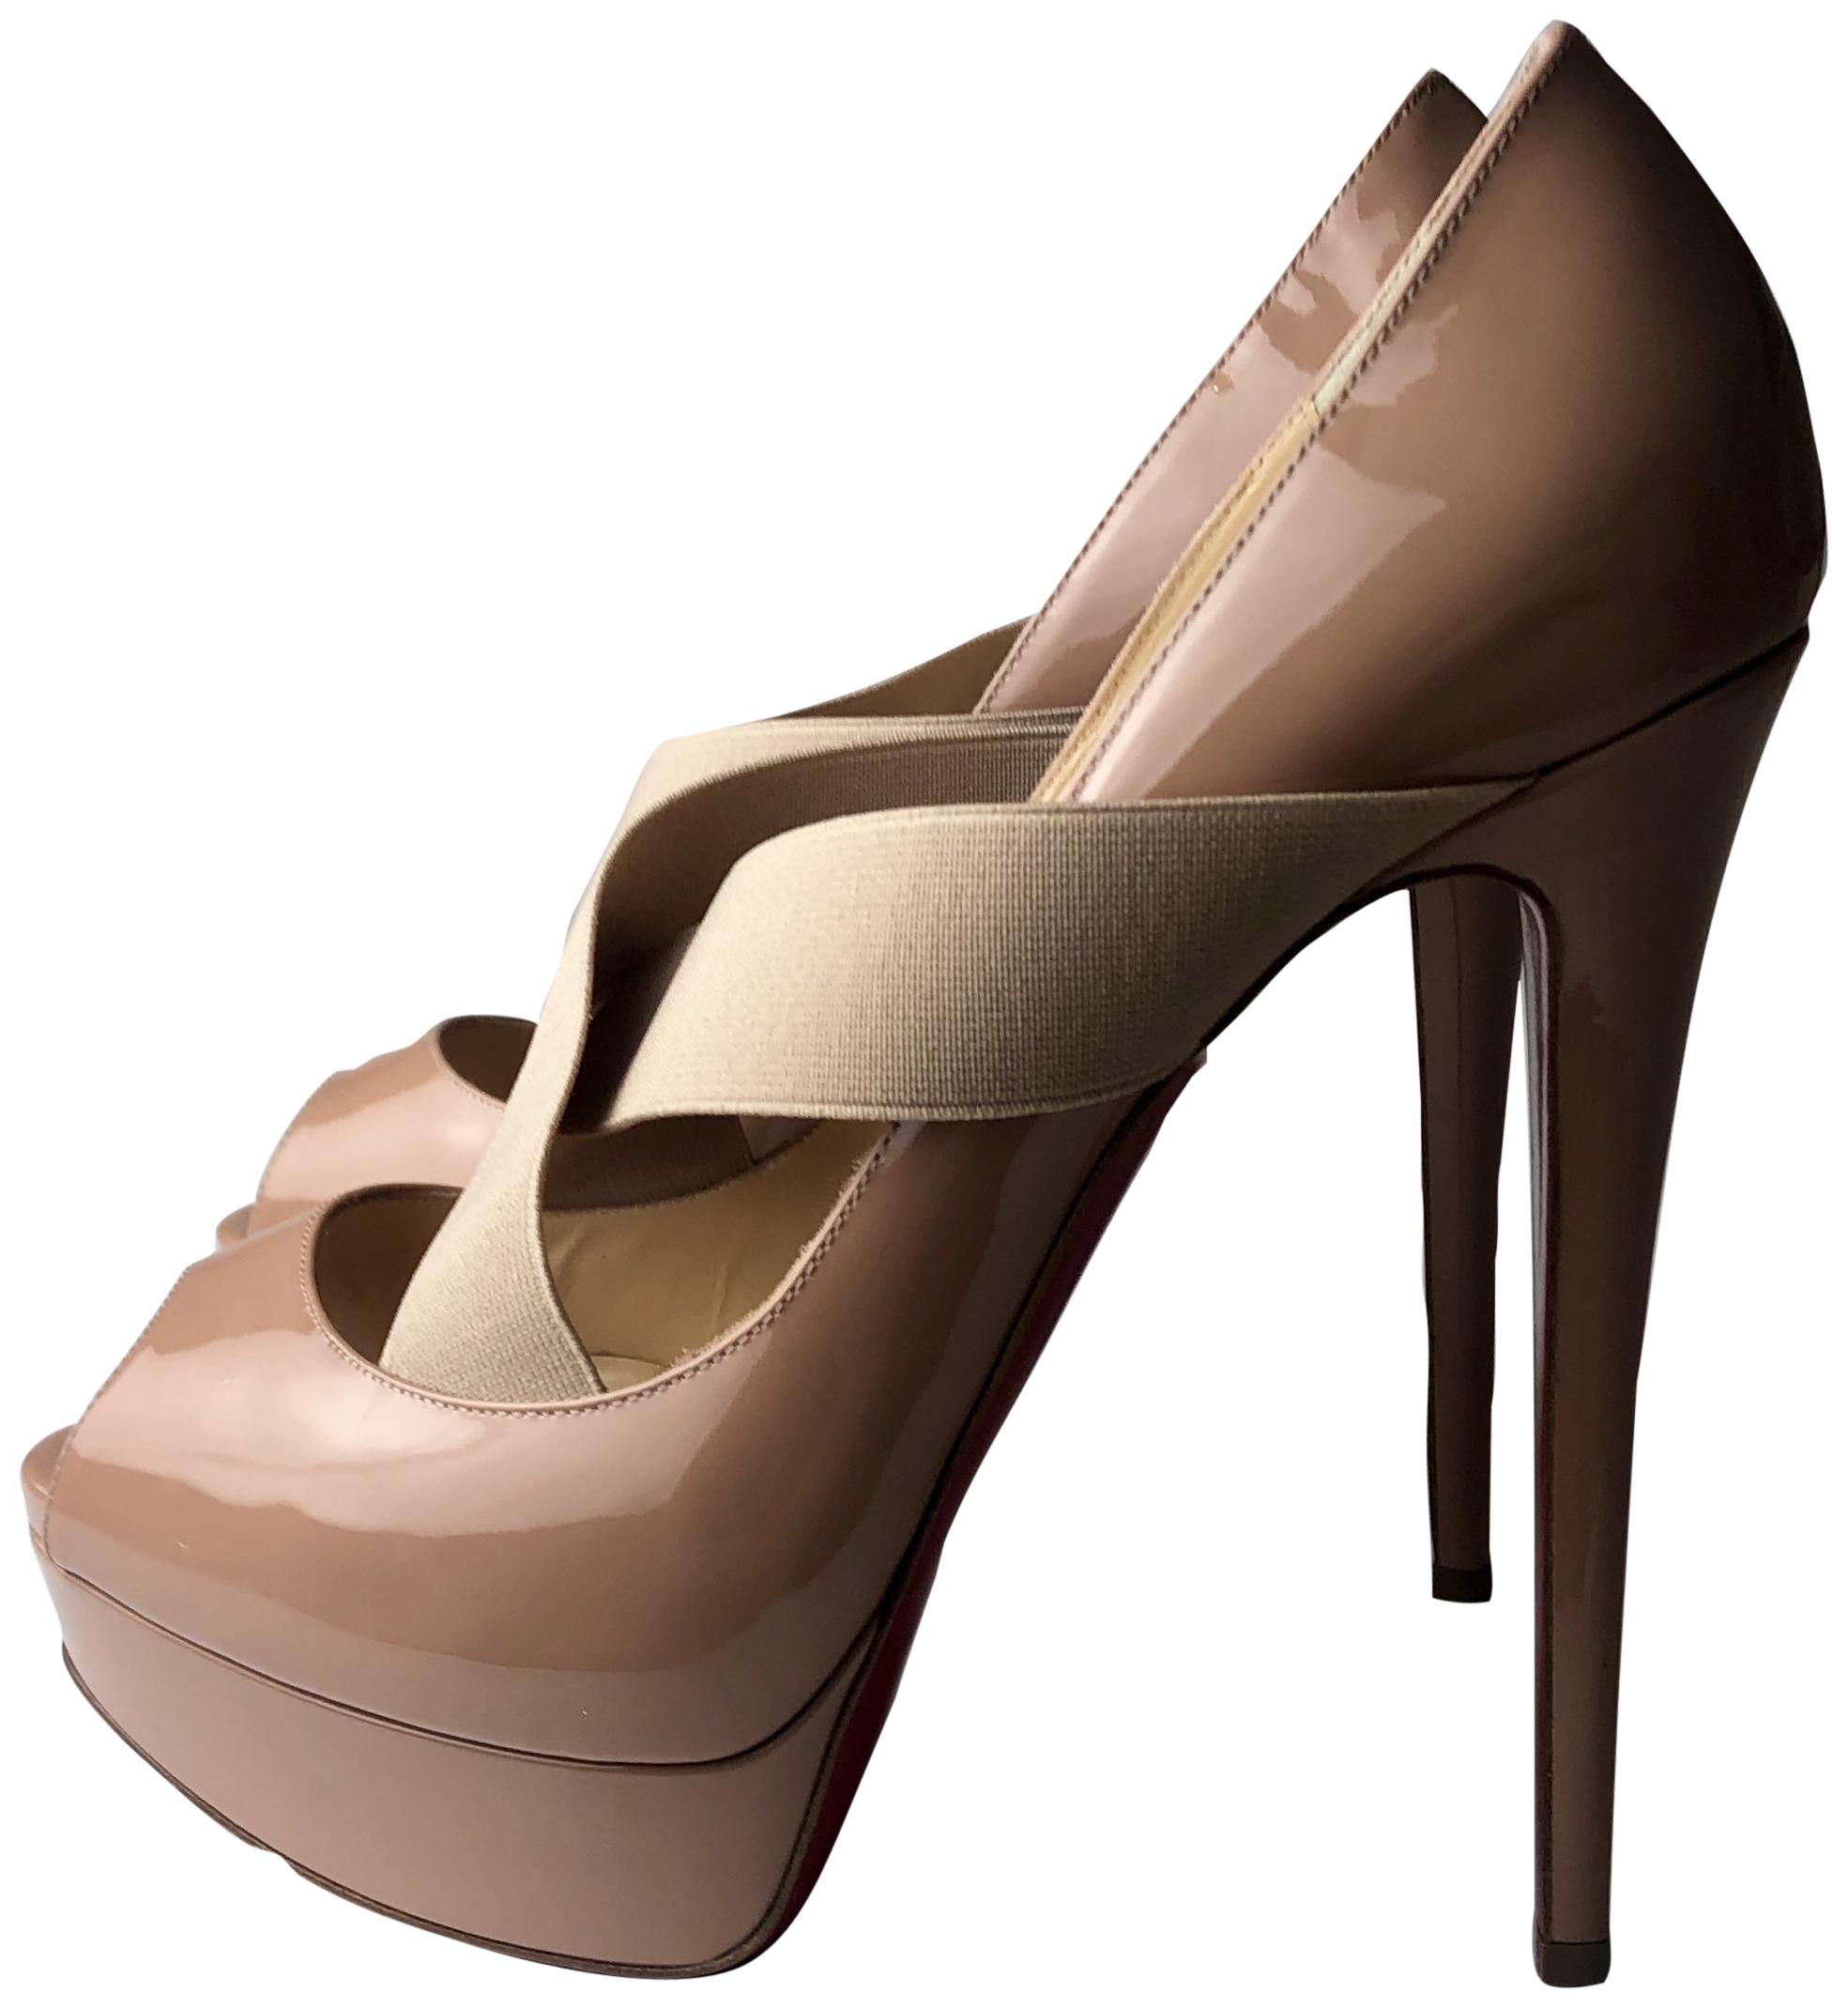 Christian Louboutin Nude Very Stagram 150 Patent Leather Pumps Size EU 40.5 (Approx. US 10.5) Regular (M, B)